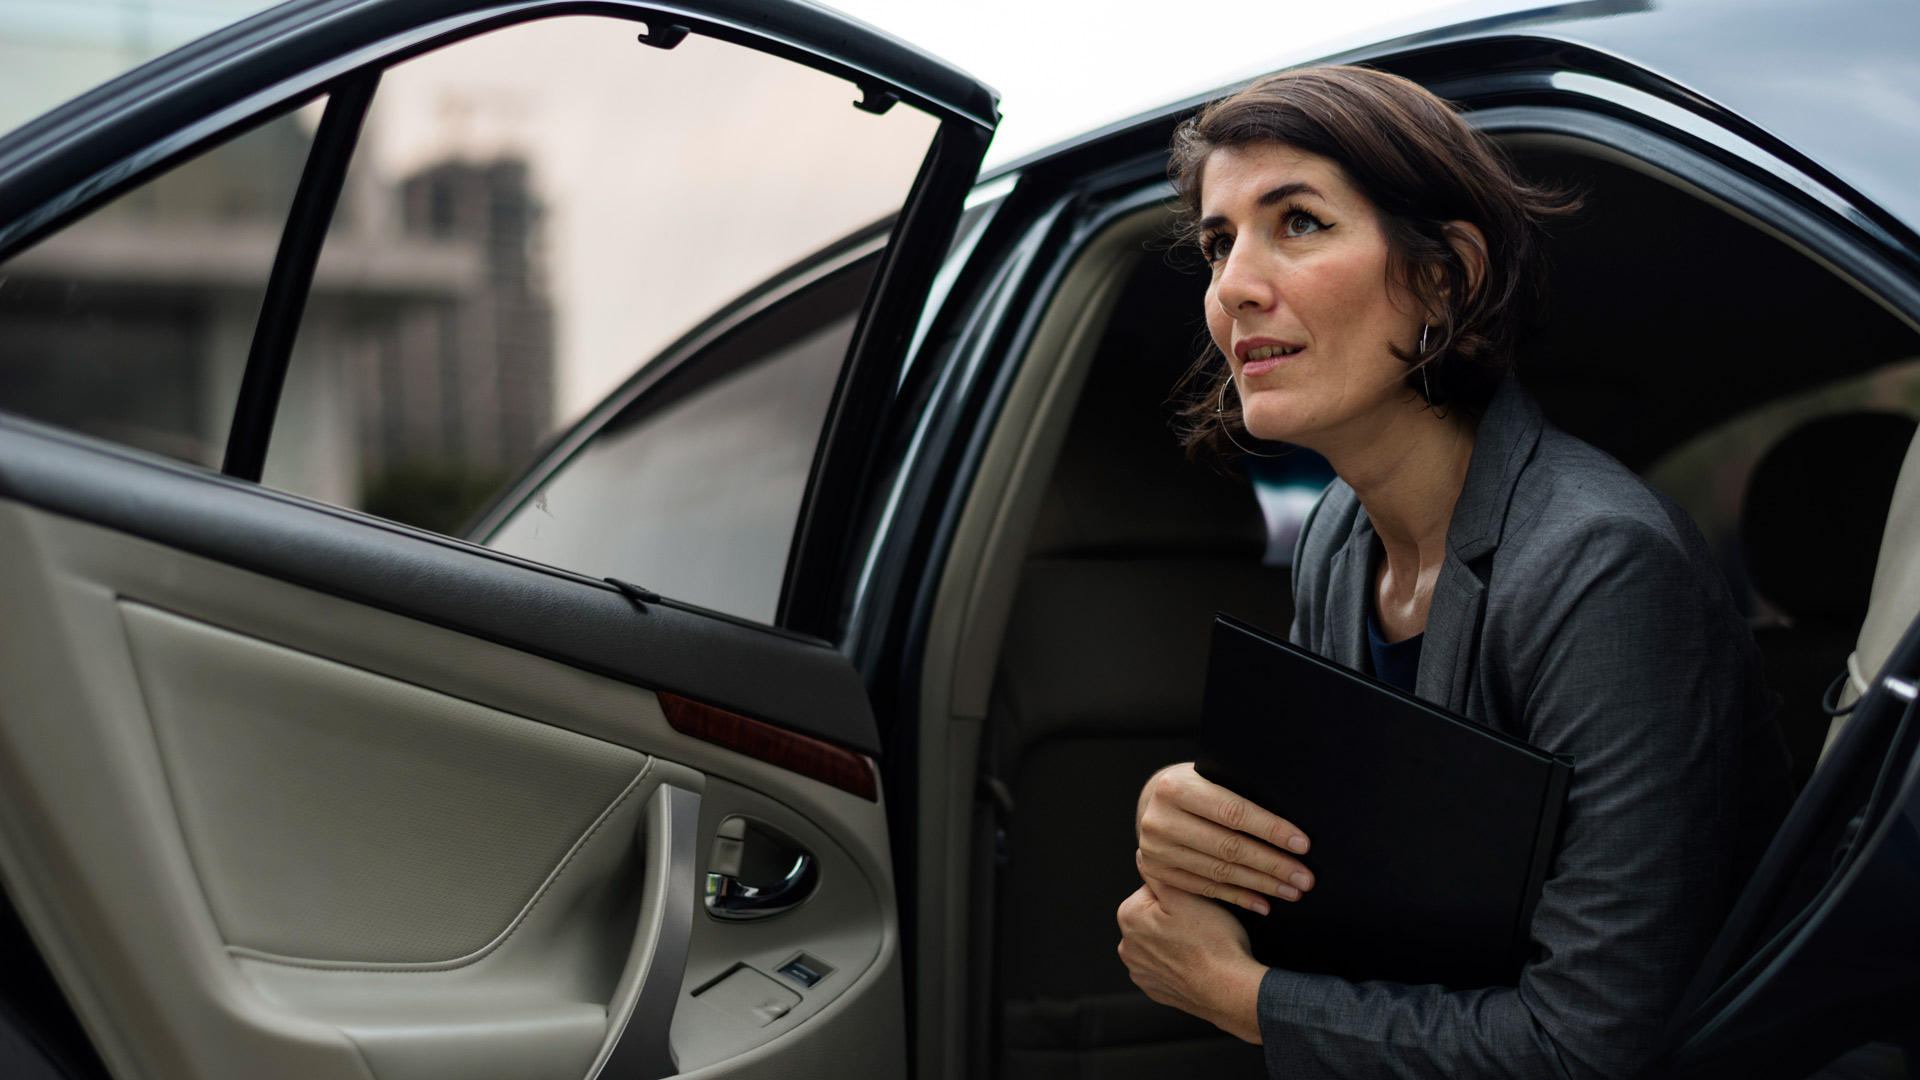 Business woman in corporate transport service